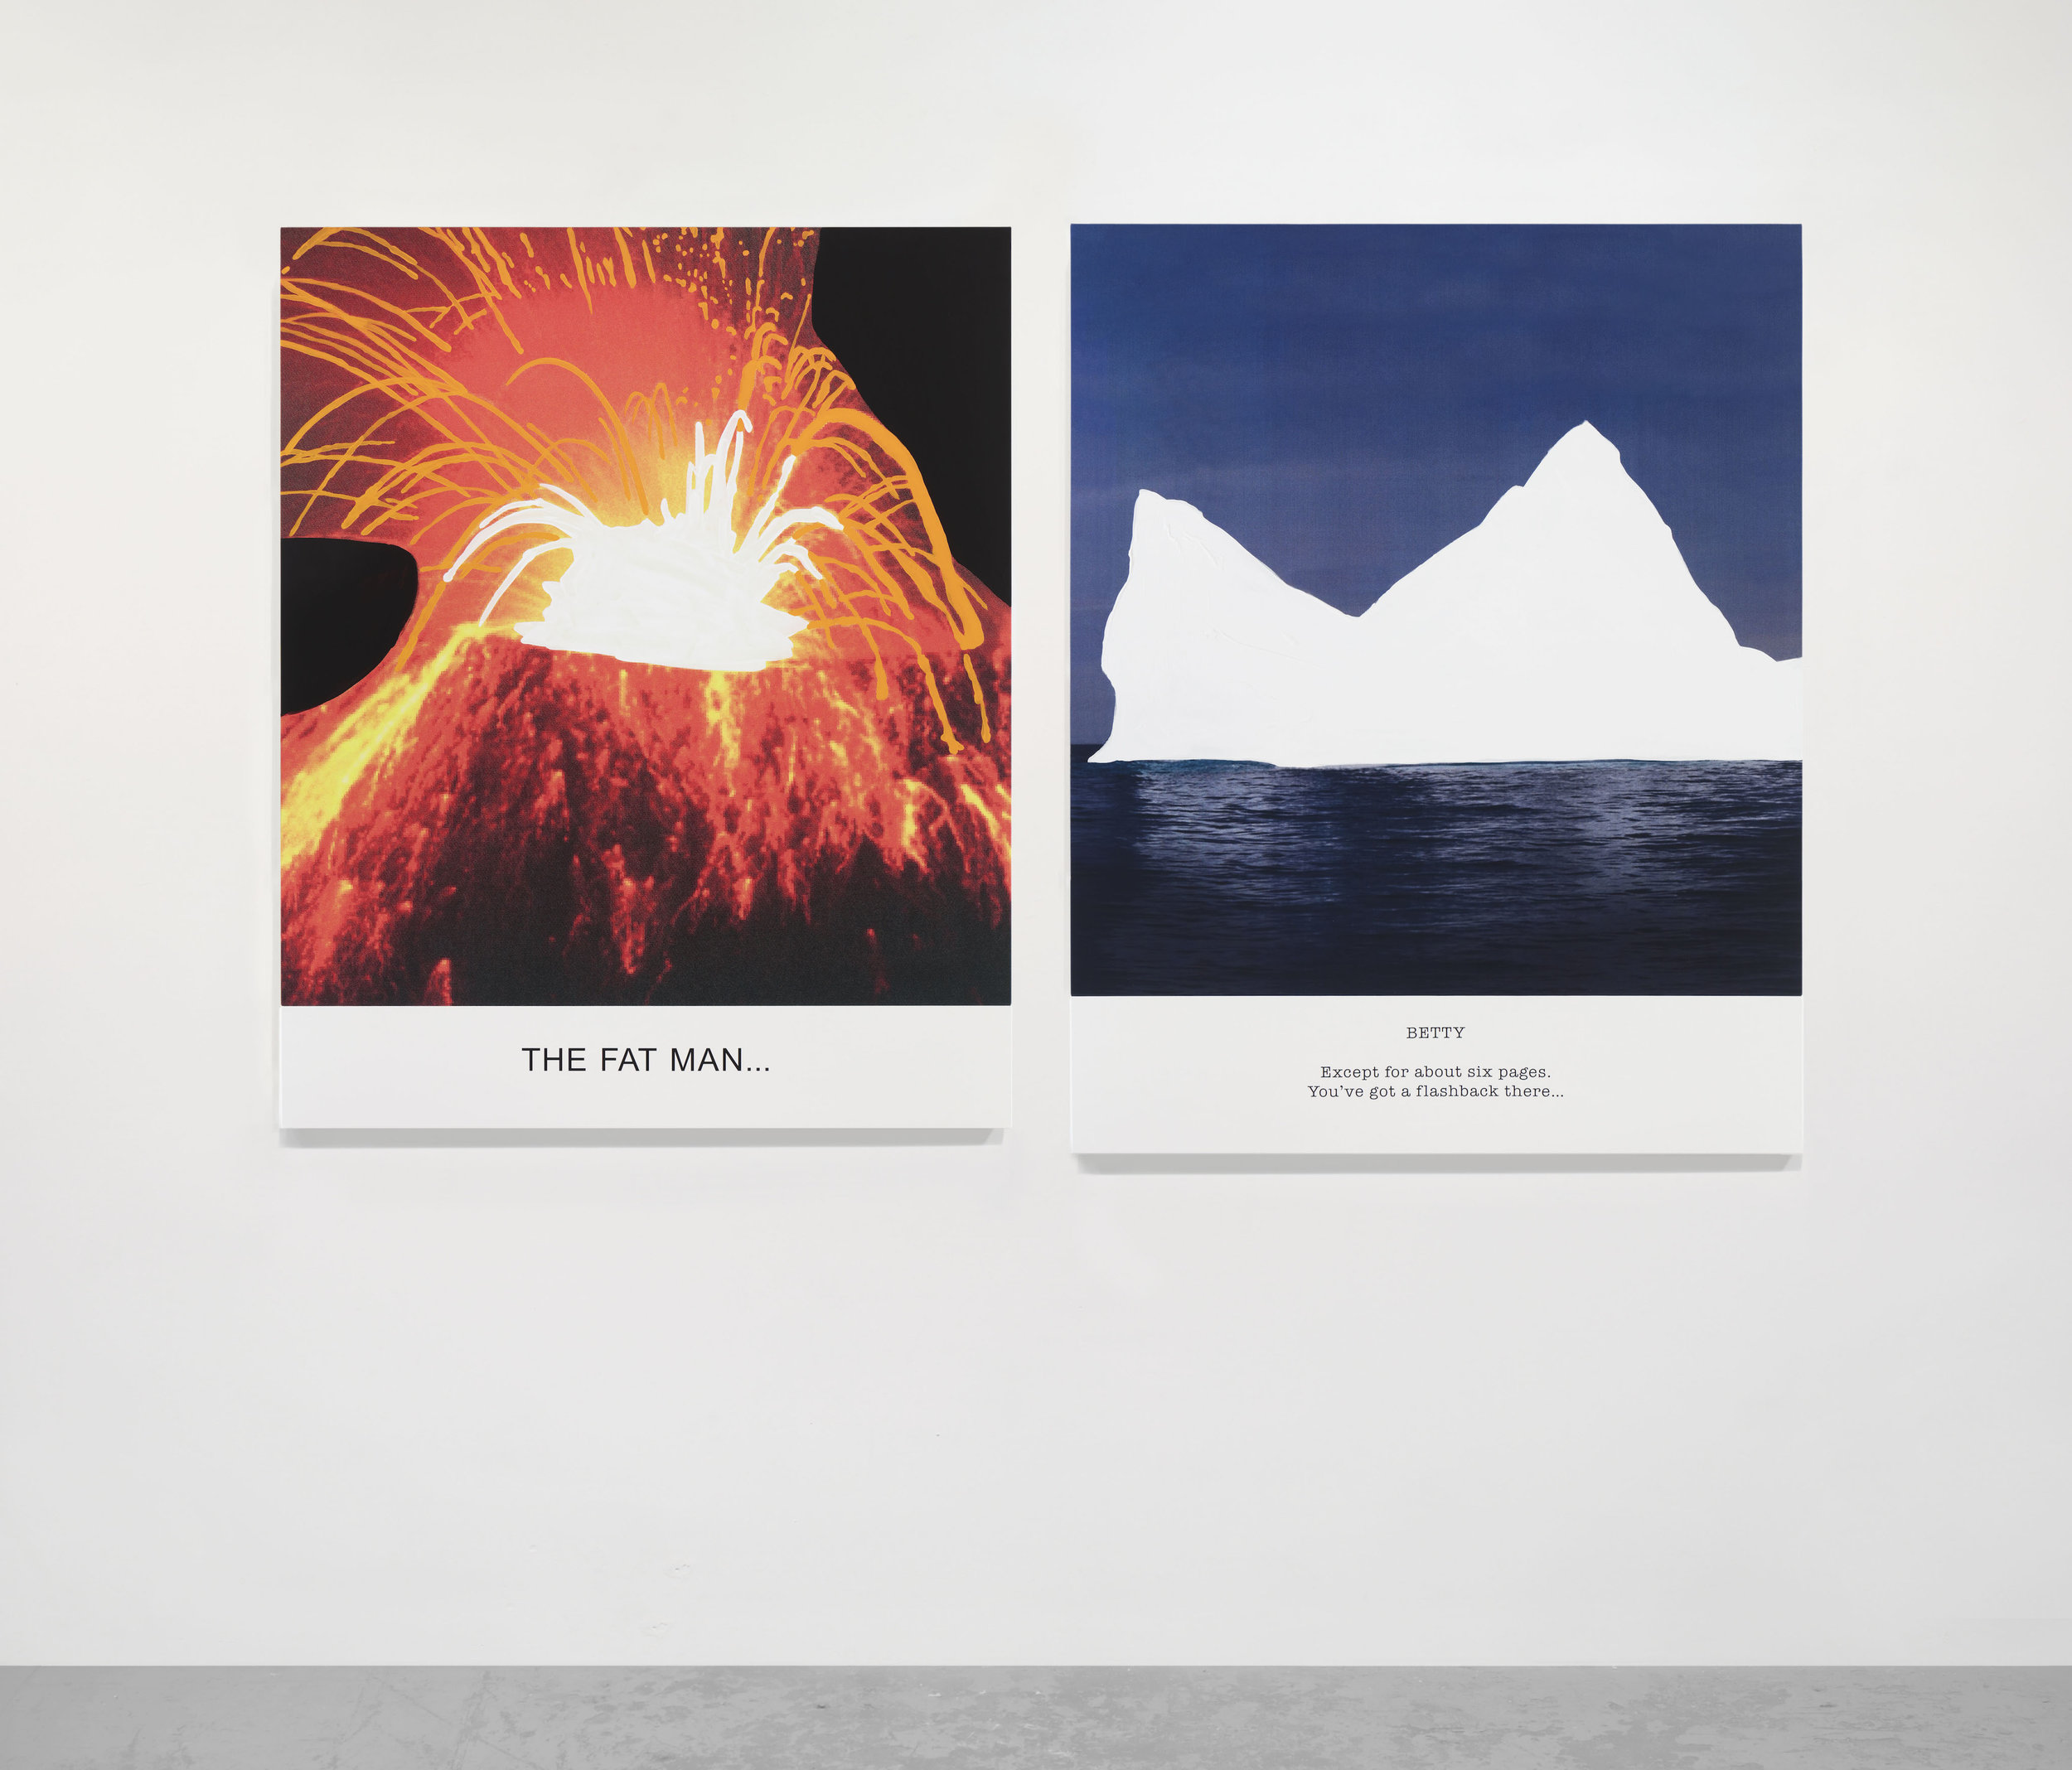 John Baldessari, Hot & Cold Series: THE FAT MAN... BETTY Except for about six pages, 2018. Varnished inkjet prints on canvas with acrylic paint. Volcano: 55 1/2 x 45 x 1 1/2 in. (141 x 114.3 x 3.8 cm). Iceberg: 57 3/8 x 45 x 1 1/2 in. (145.7 x 114.3 x 3.8 cm) (22040). Courtesy of Marian Goodman Gallery.